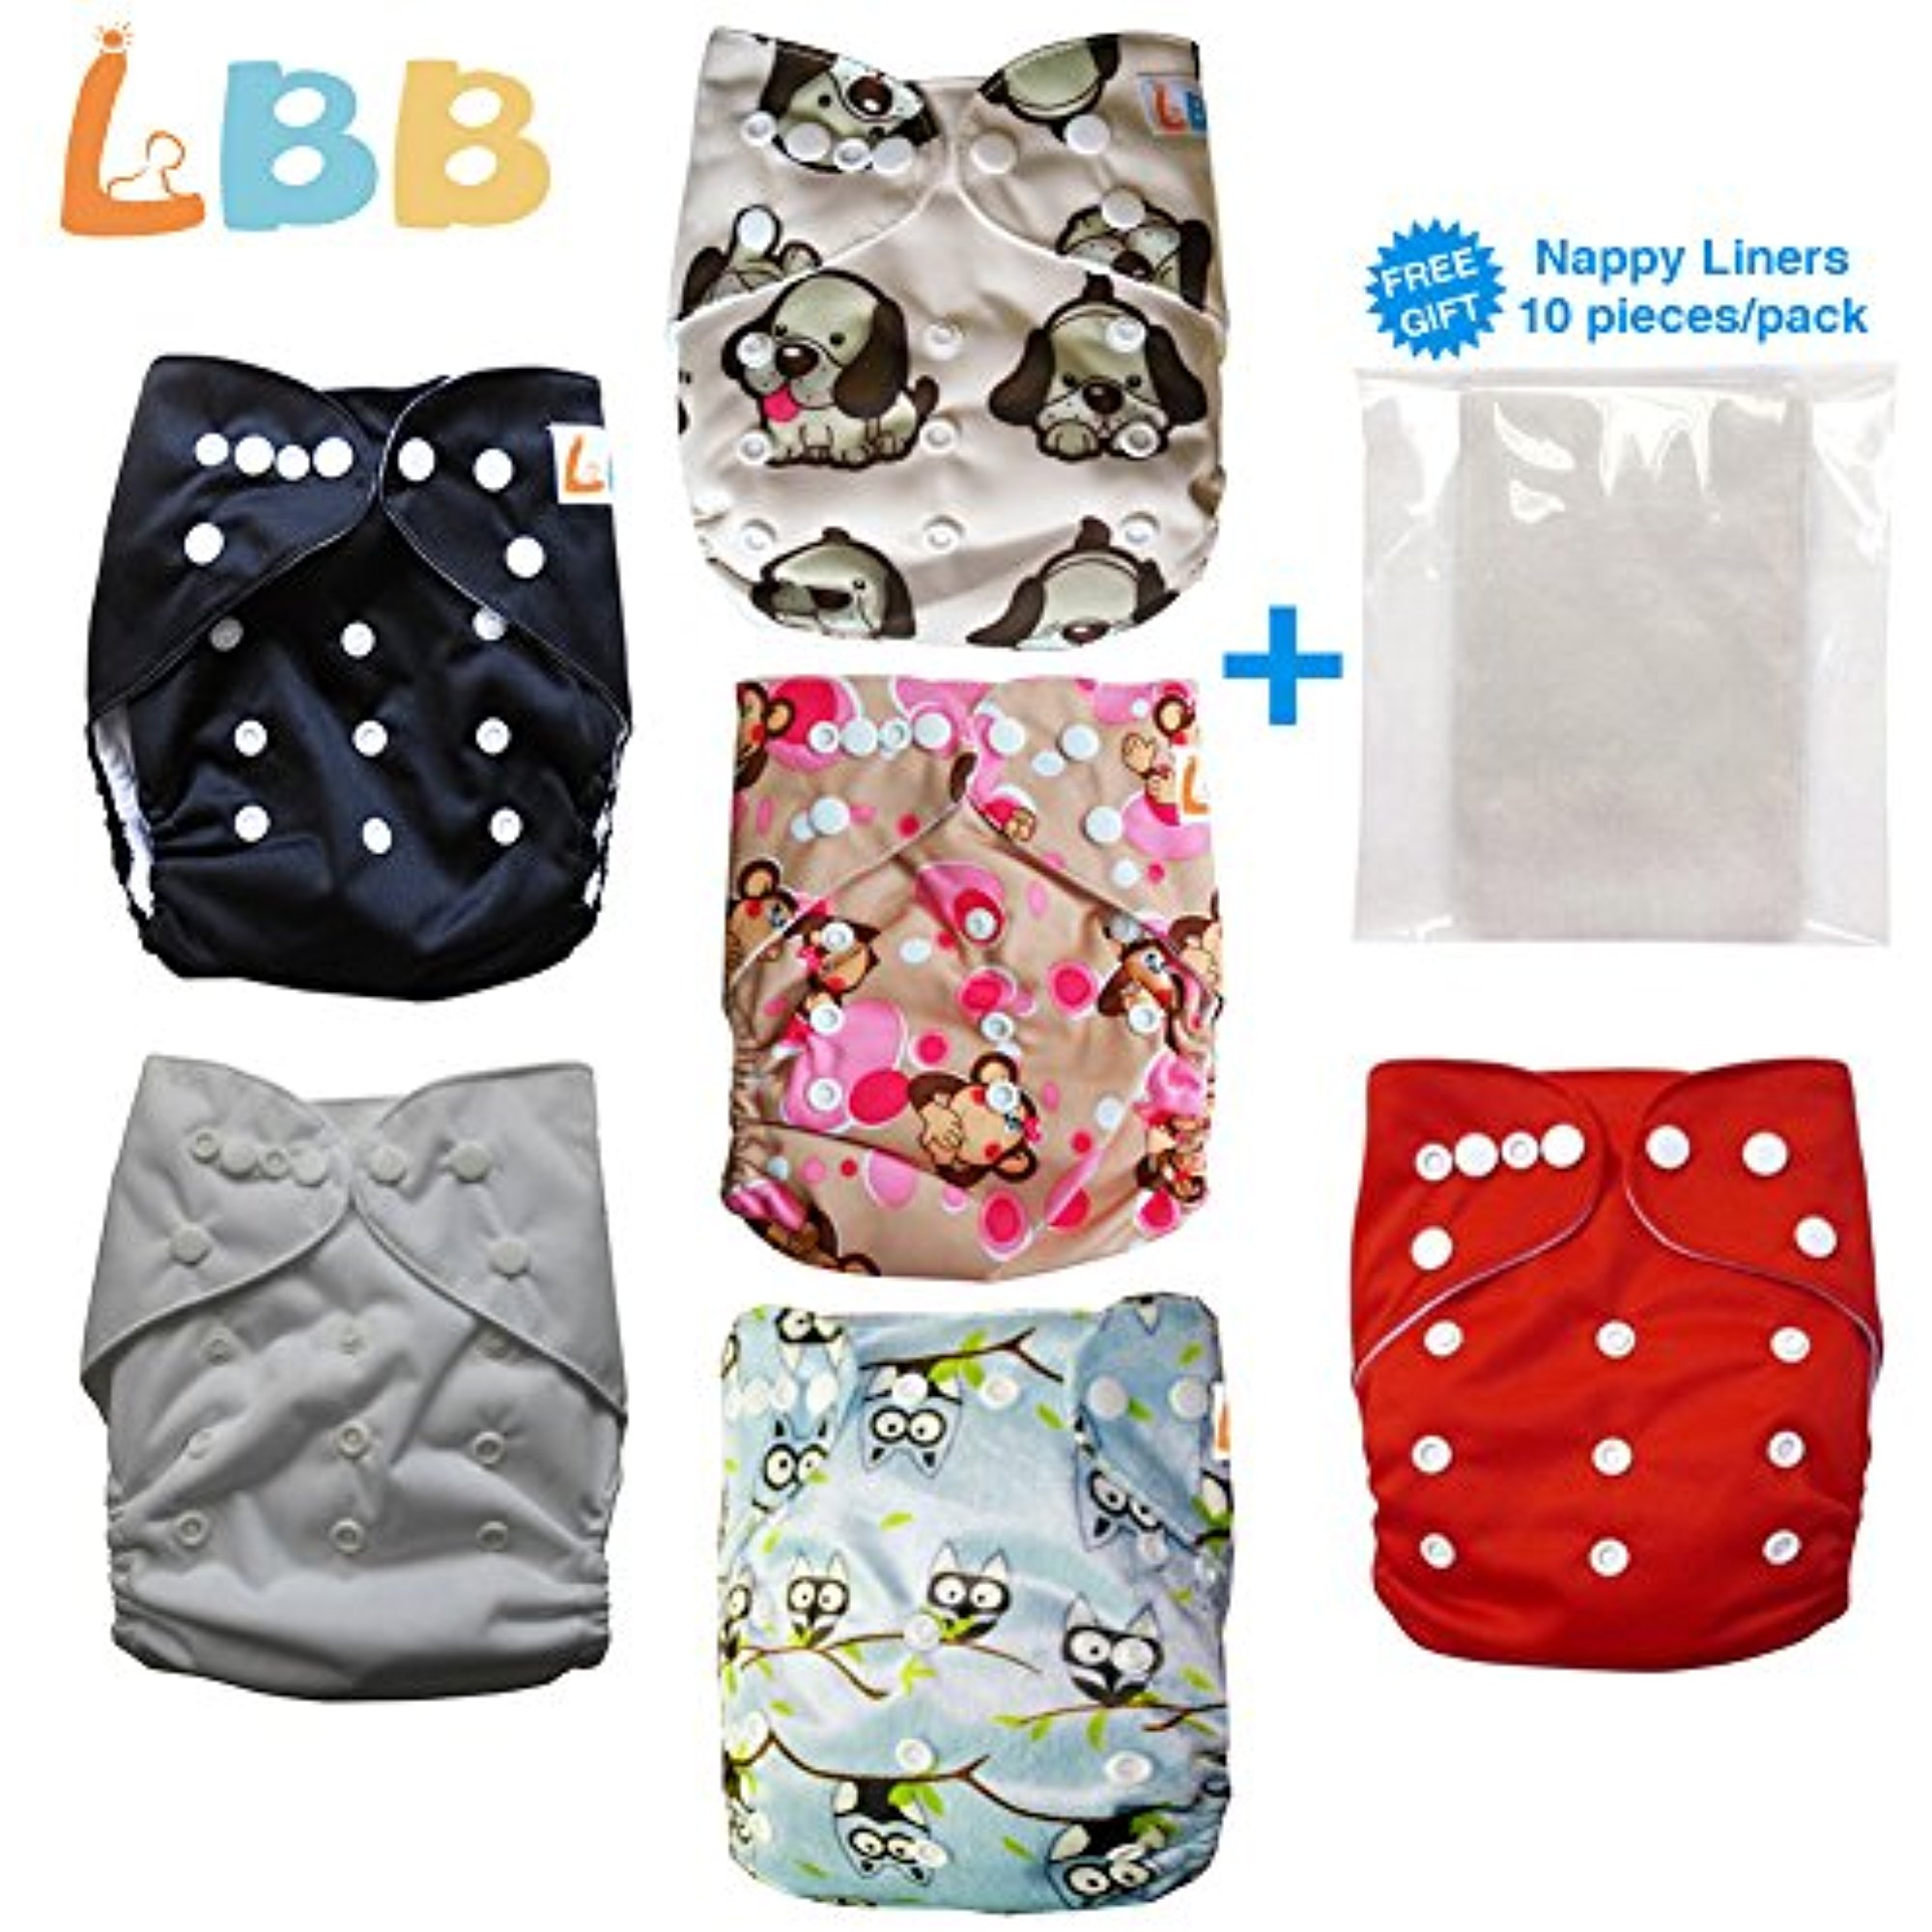 LBB Baby Cloth Diapers Reusable Washable, 6 pc + 6 Inserts, Adjustable Size